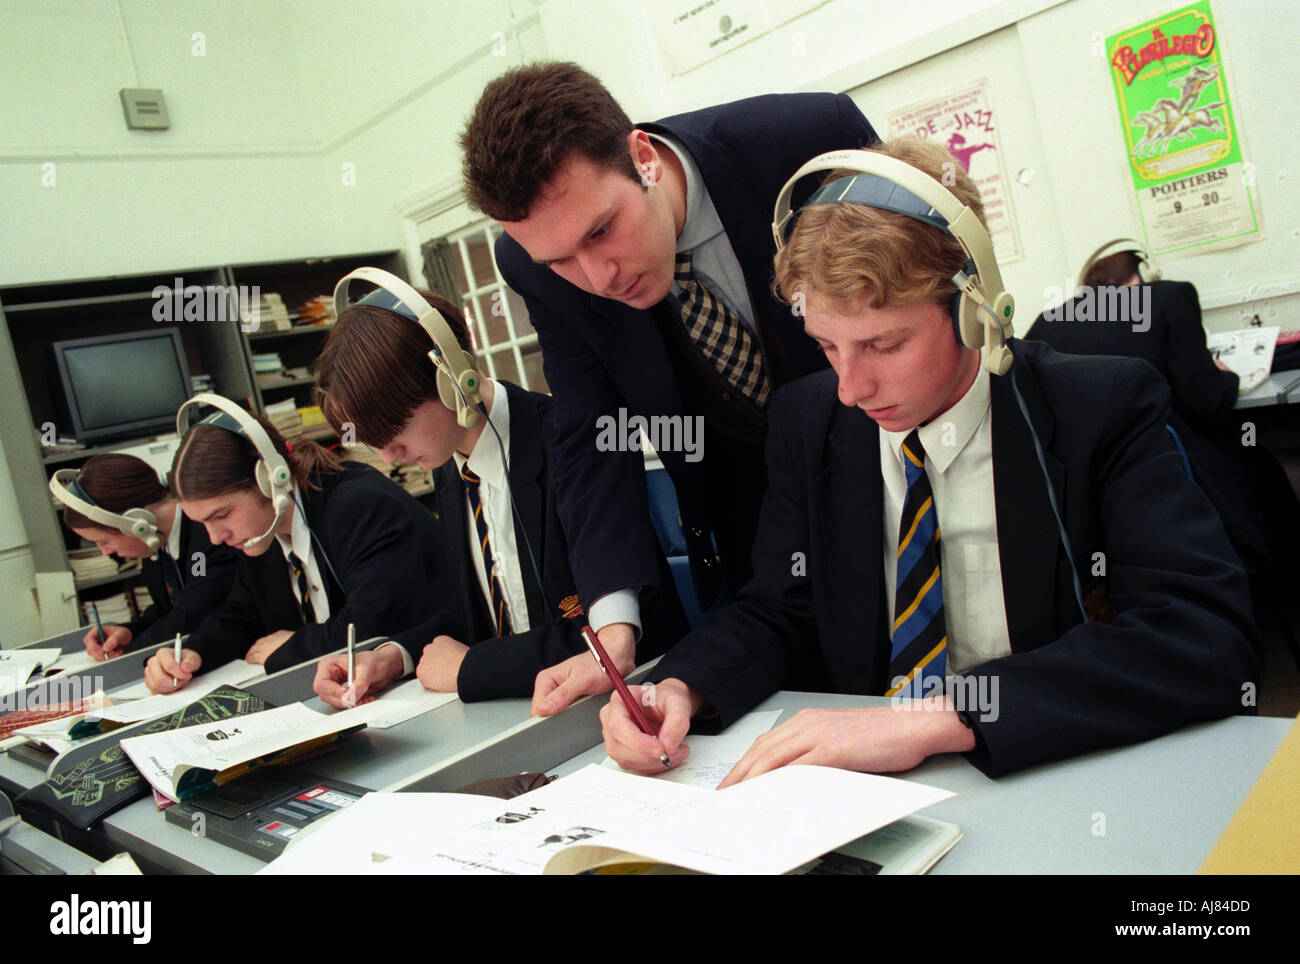 Language class in secondary school - Stock Image